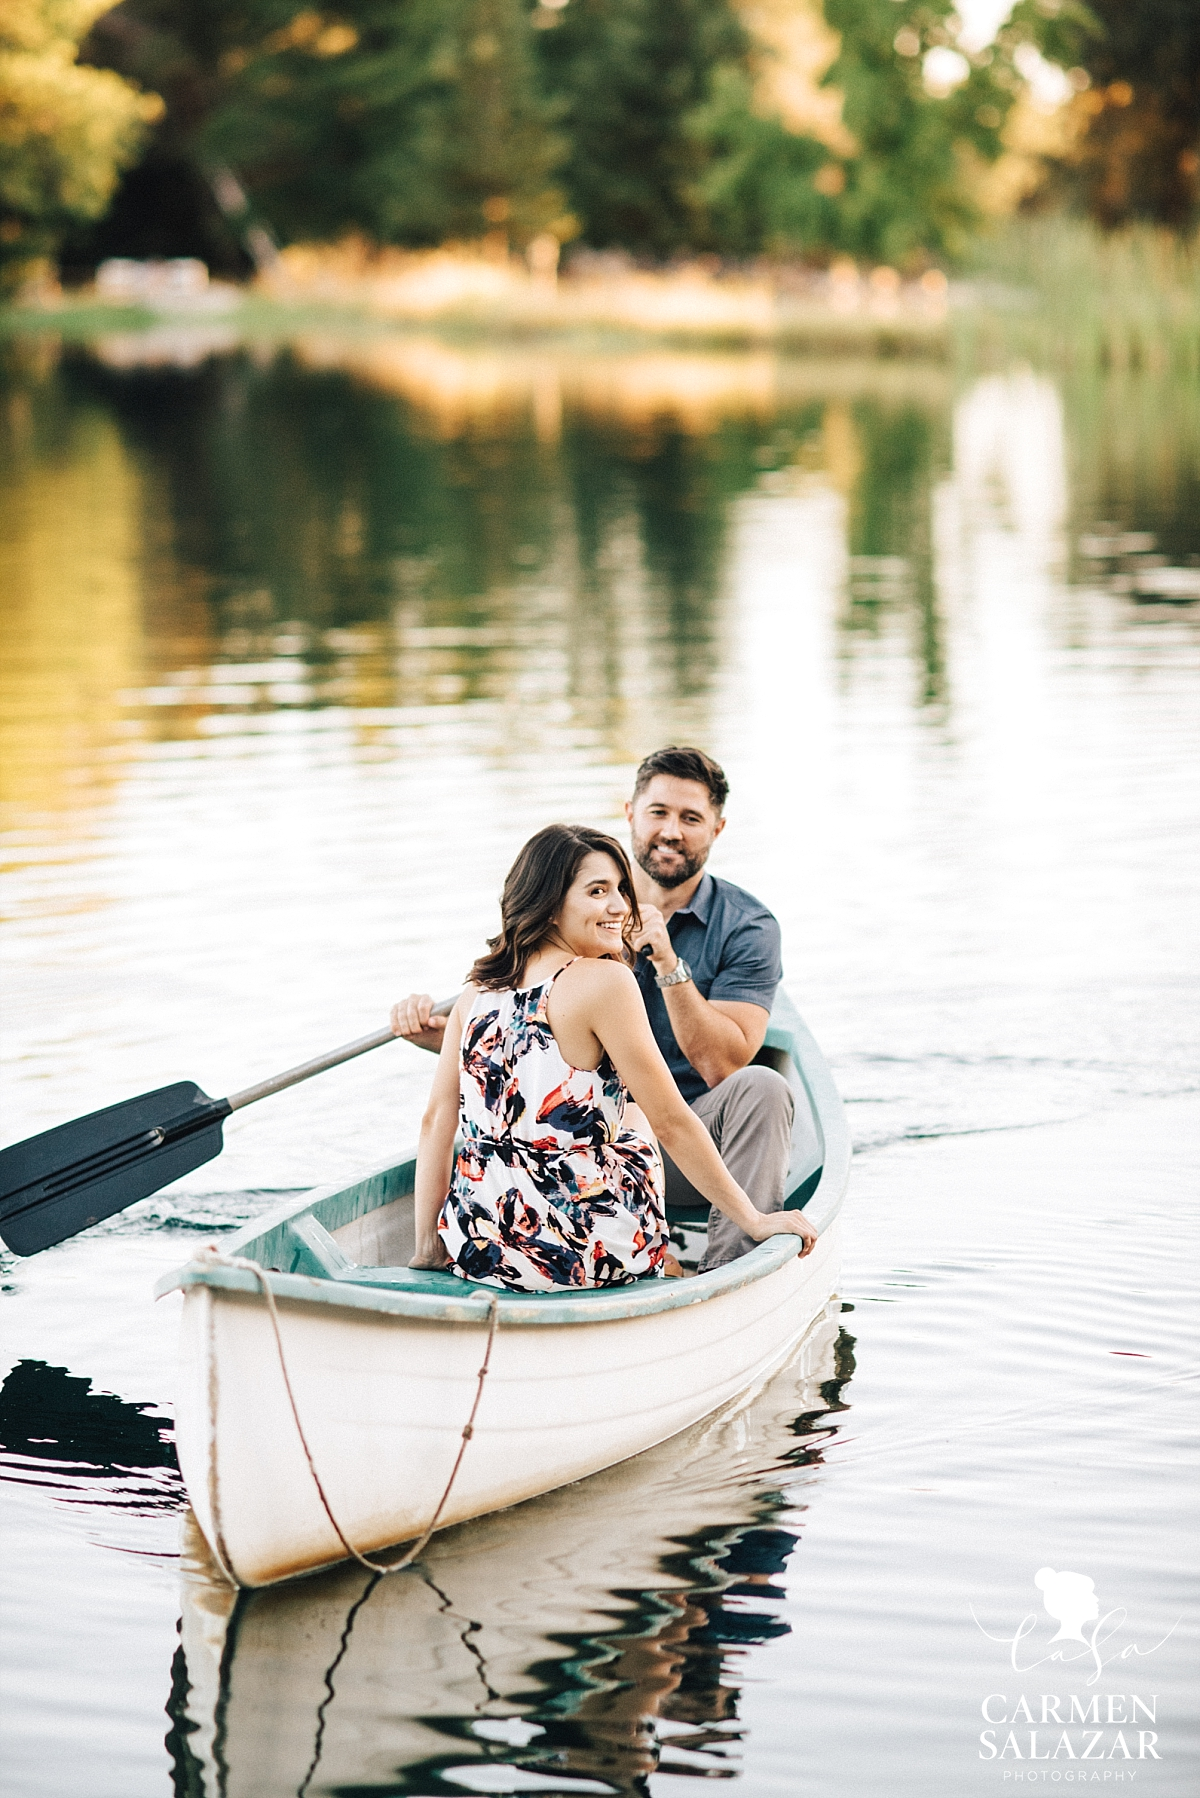 Boat themed engagement session - Carmen Salazar